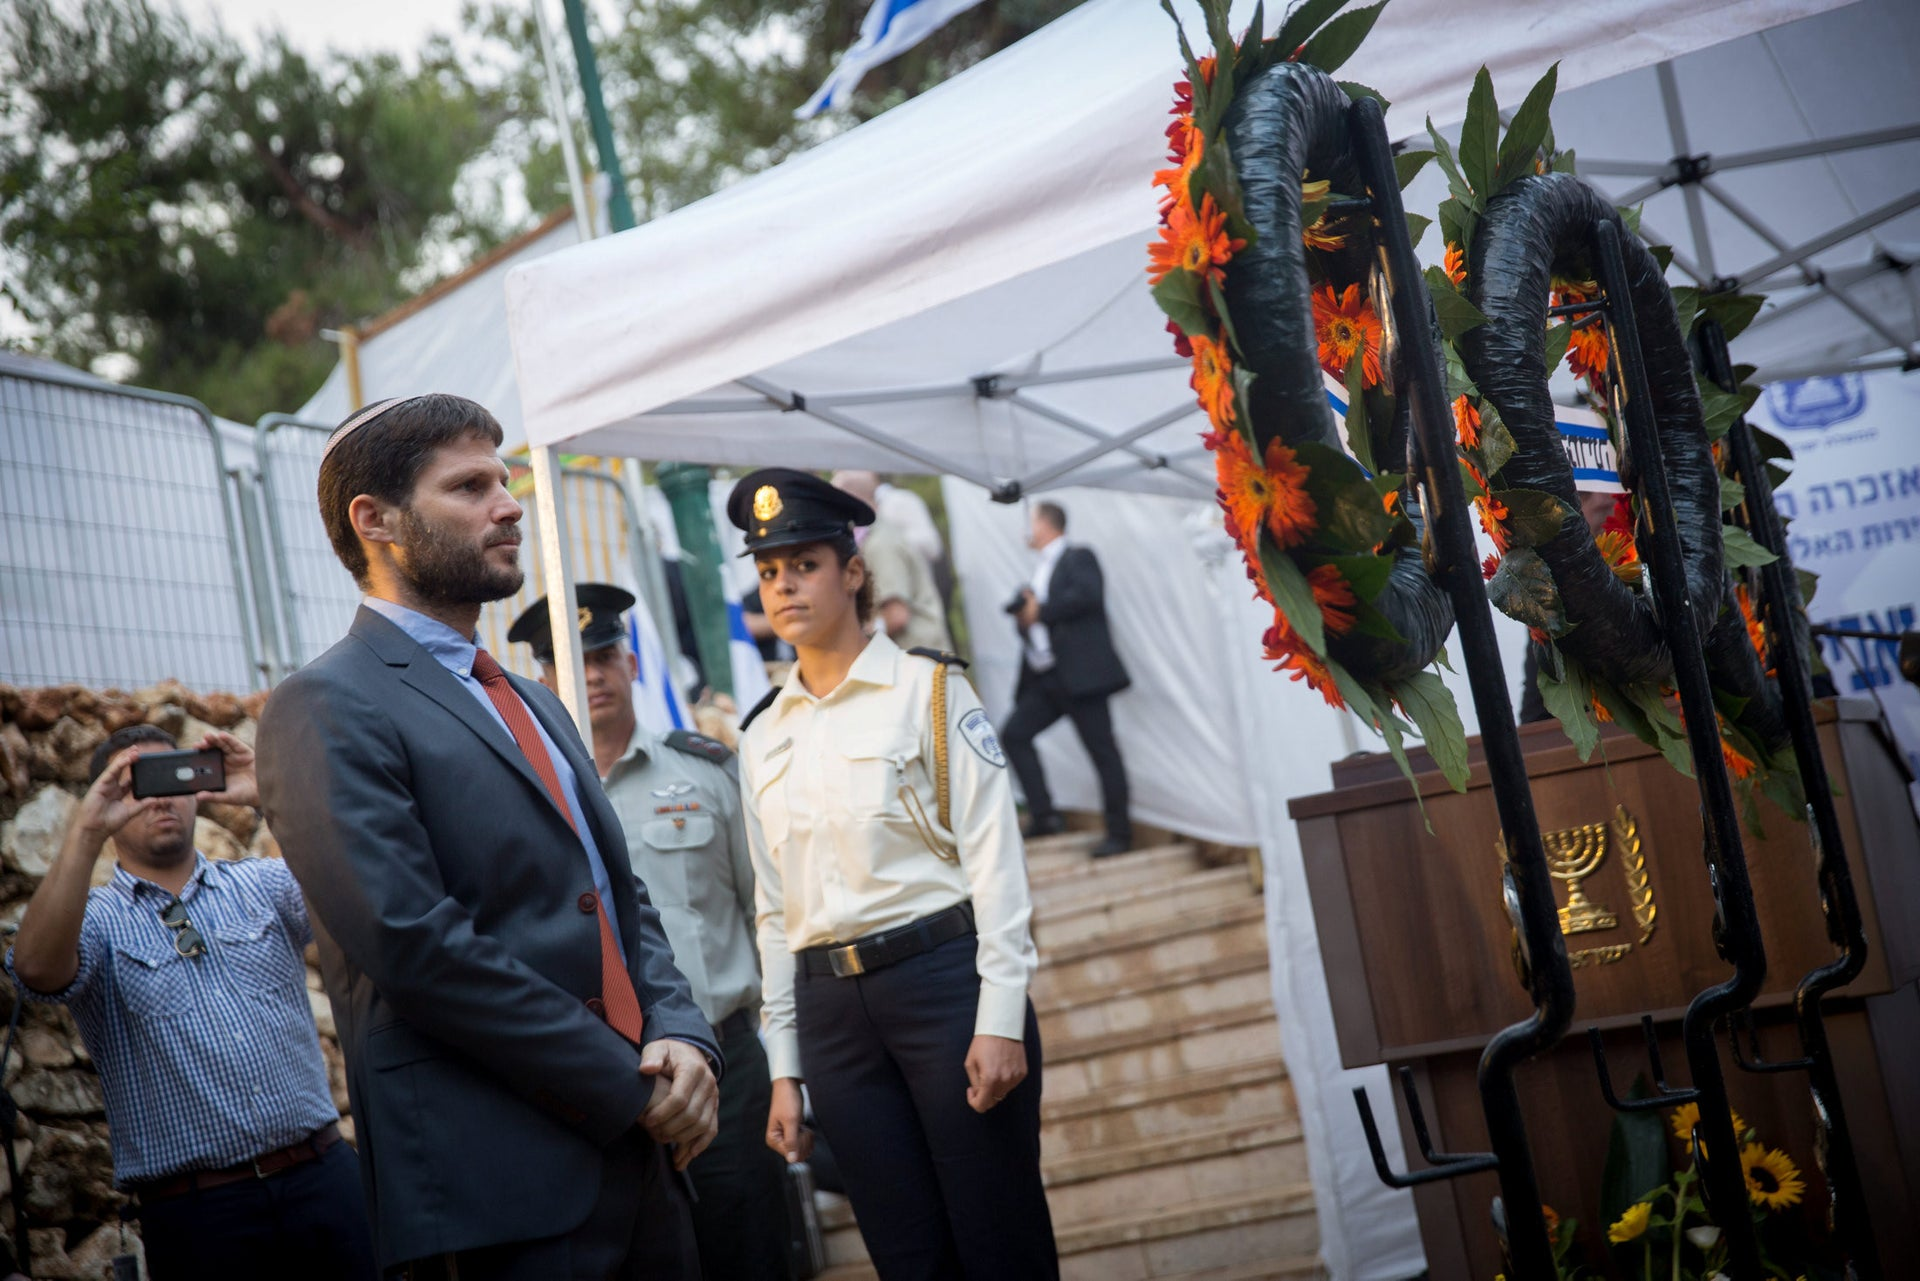 MK Bezalel Smotrich at a memorial ceremony for assassinated Minister Rehavam Ze'evi in 2016.